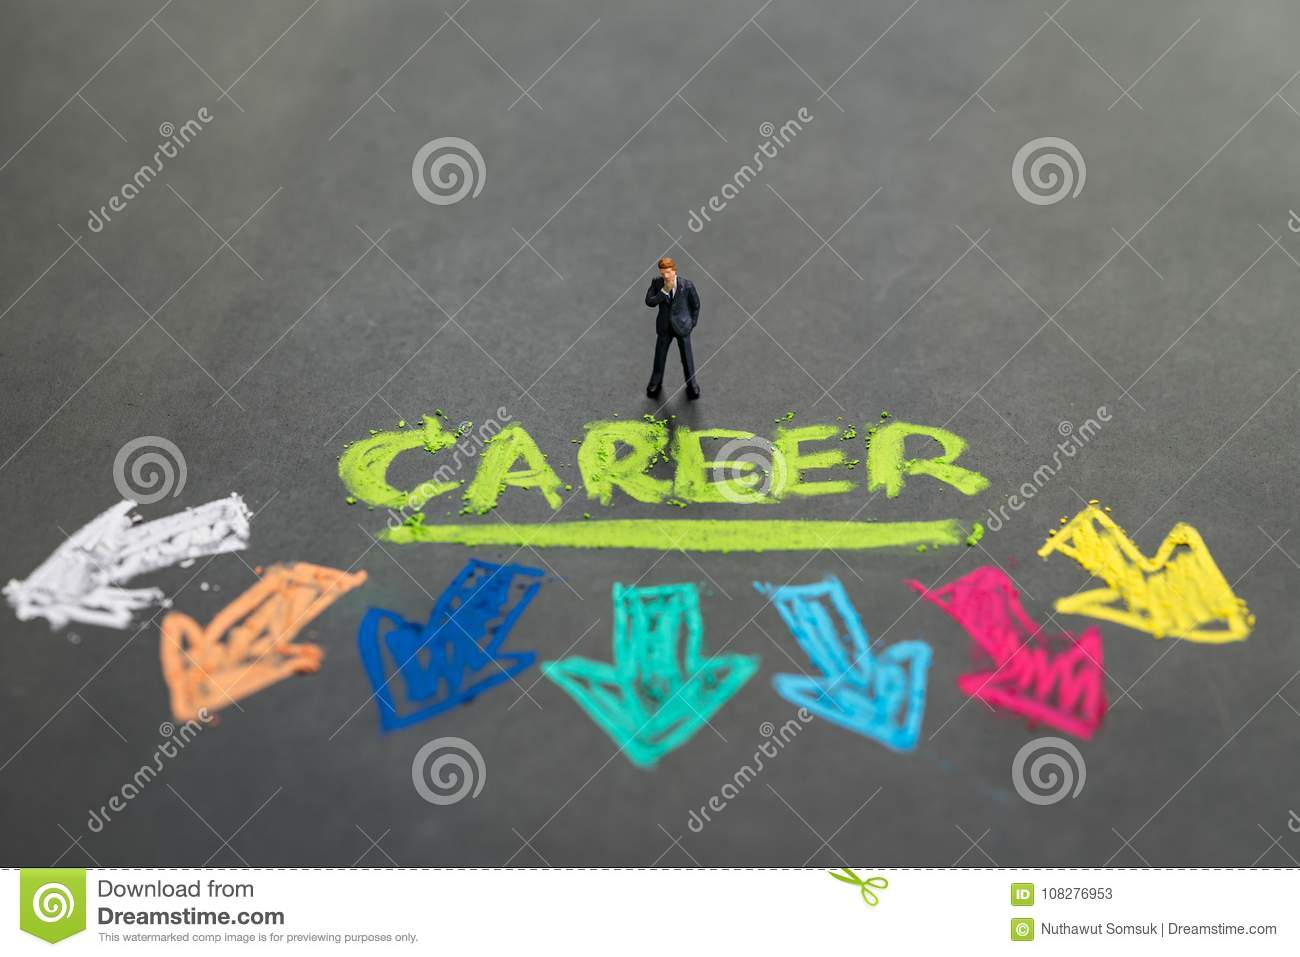 12 591 Career Path Photos Free Royalty Free Stock Photos From Dreamstime